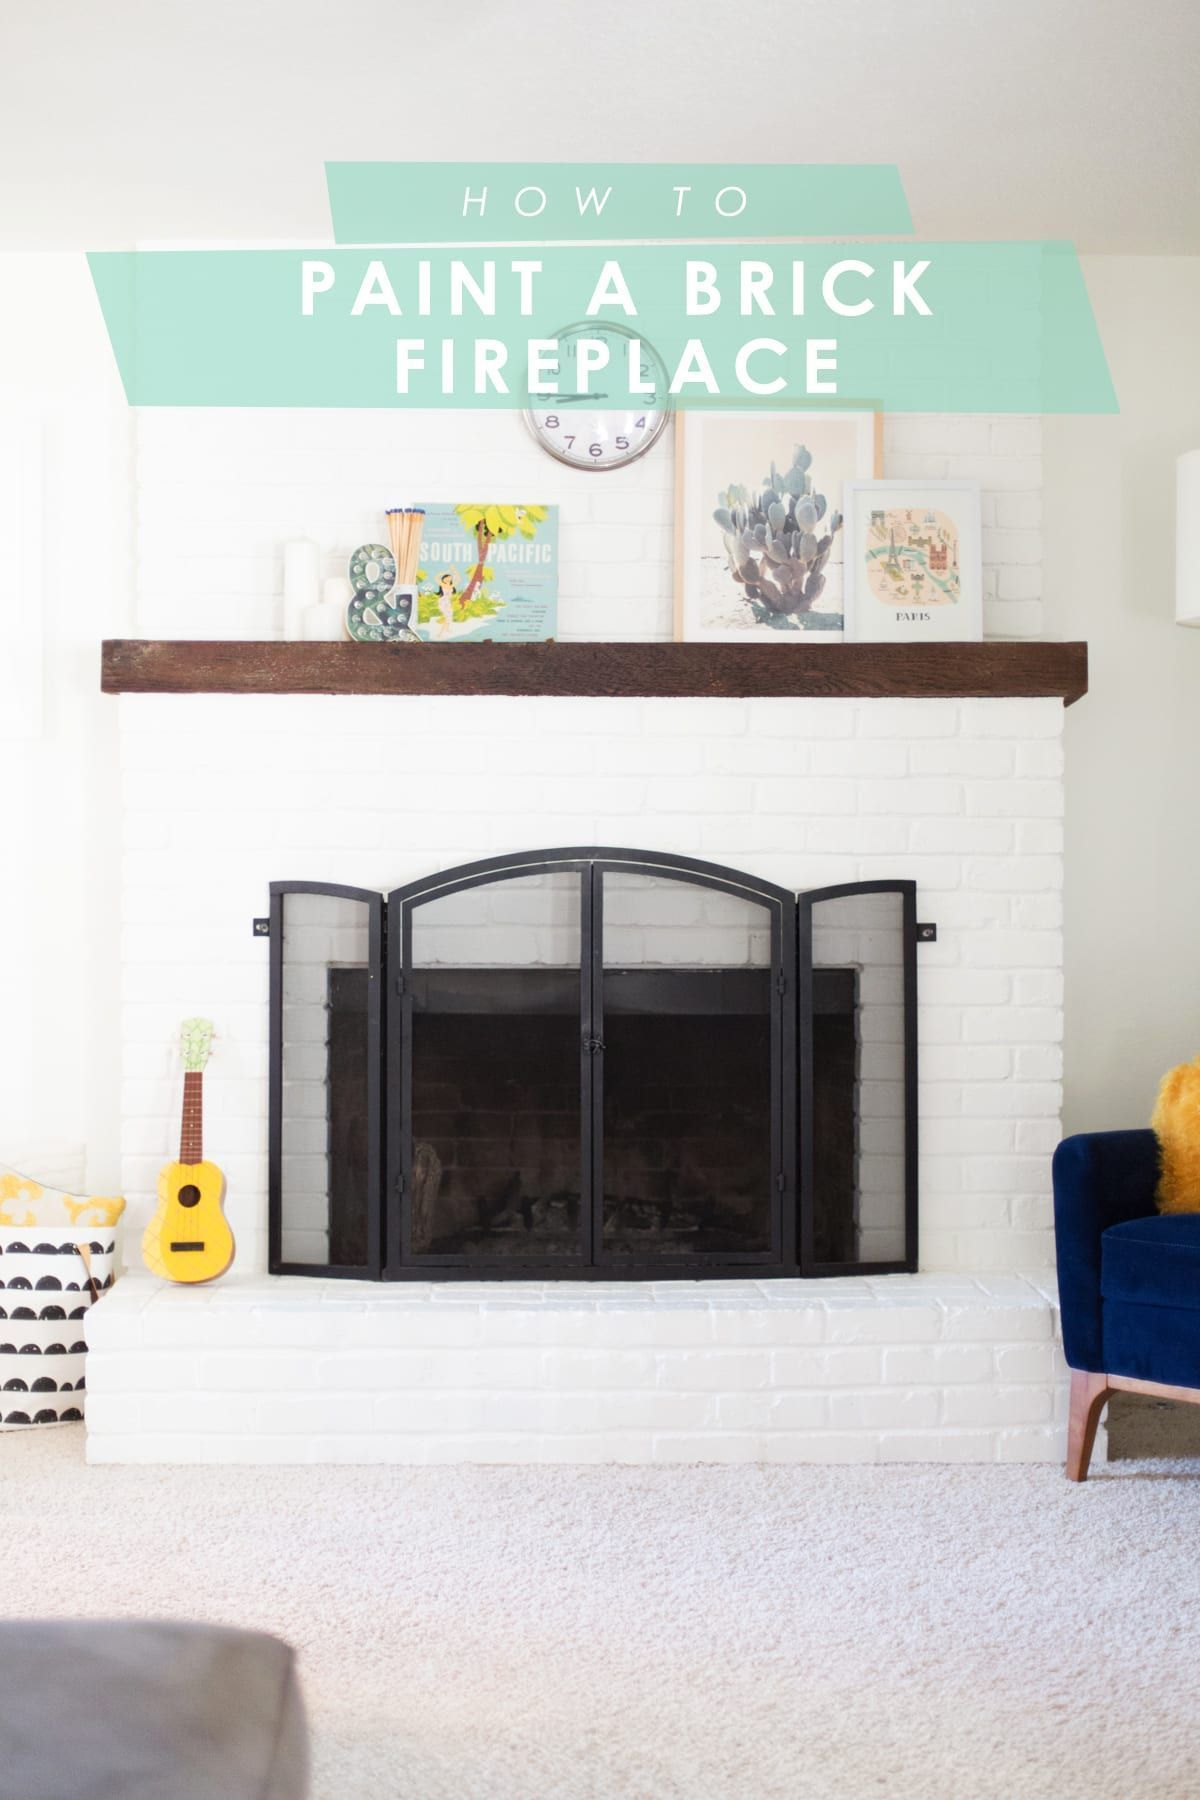 How to Paint a Brick Fireplace White #whitebrickfireplace How to Paint a Brick Fireplace White #whitebrickfireplace How to Paint a Brick Fireplace White #whitebrickfireplace How to Paint a Brick Fireplace White #whitebrickfireplace